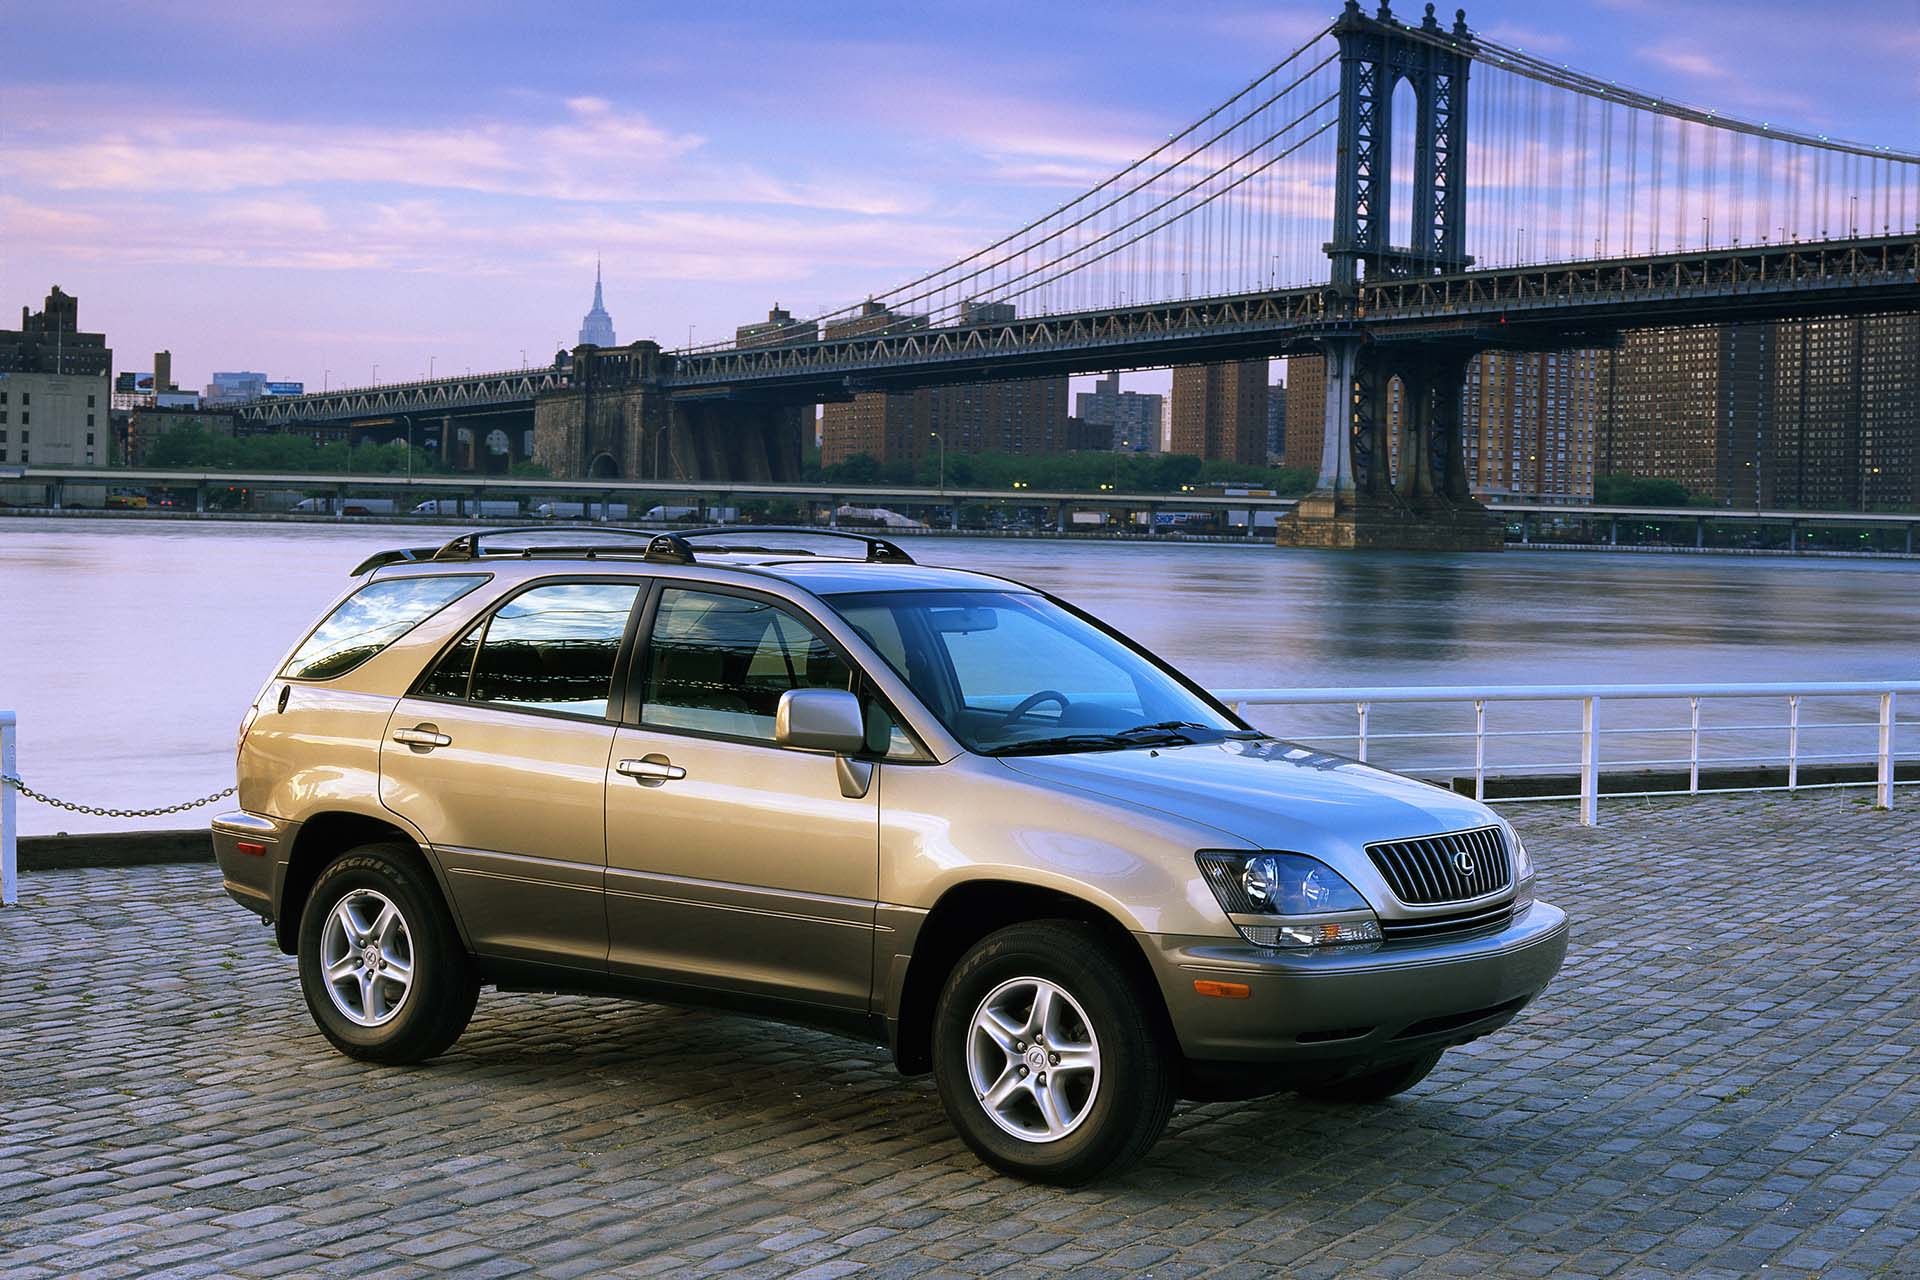 The first RX300 arrived as a 1998 model with a 220-hp V6, a four-speed automatic transmission and all-wheel drive. Compared to the Harrier, the interior appointments were greatly improved, including Walnut trim and a six-CD changer.